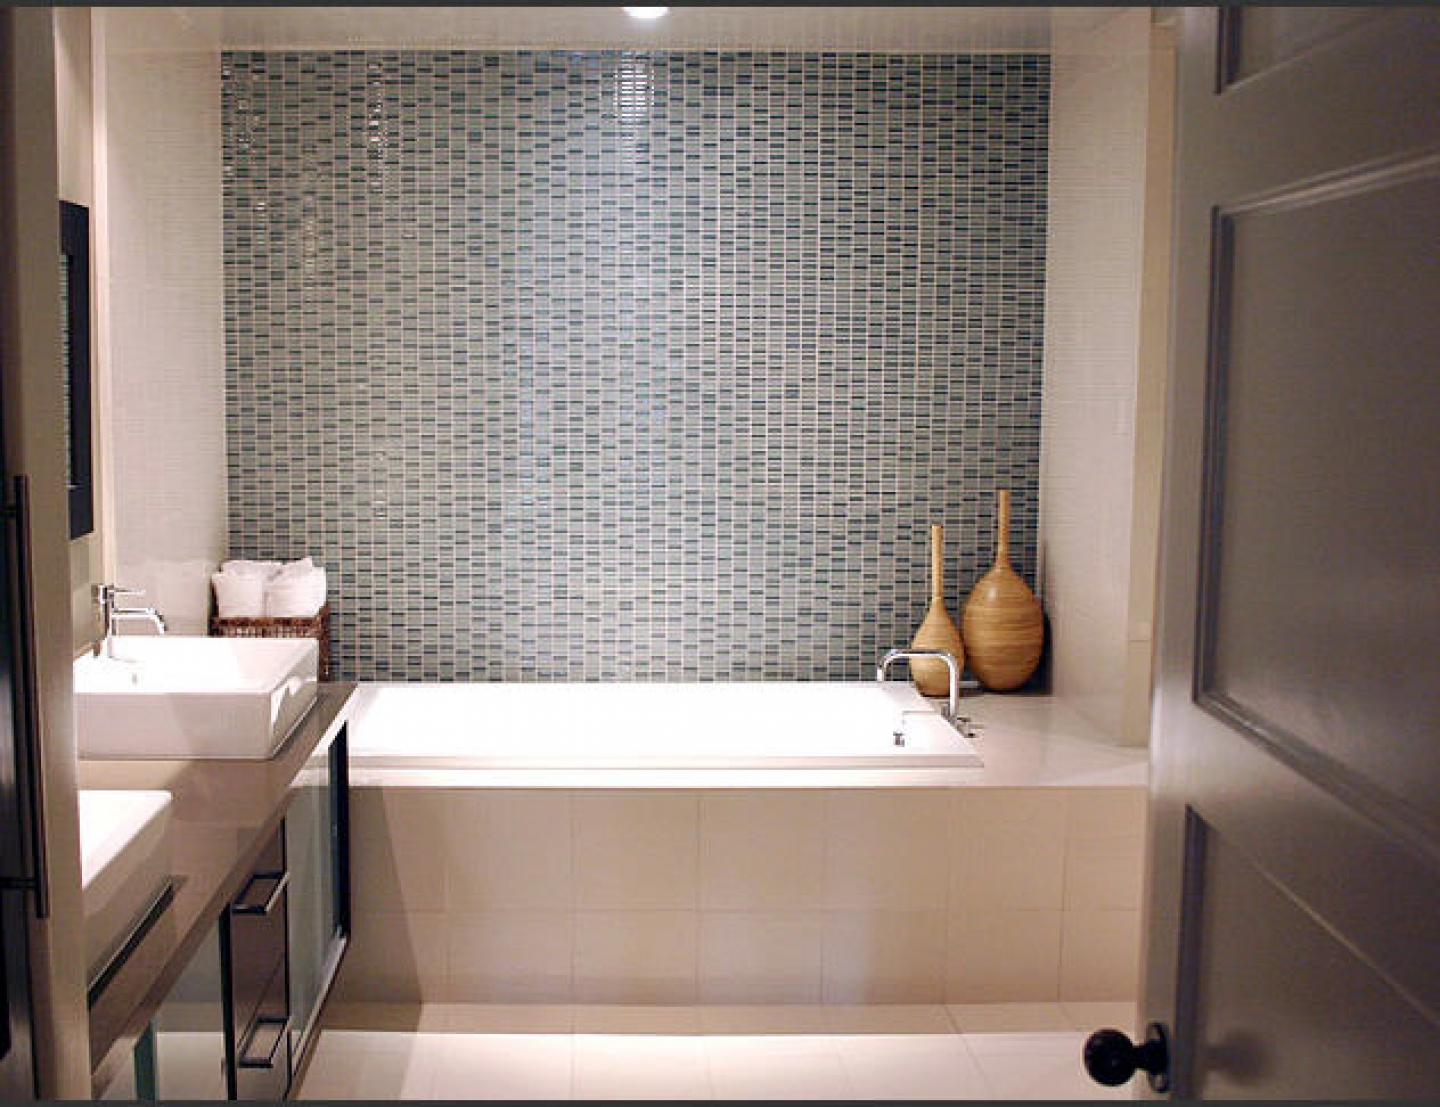 Small-space-modern-bathroom-tile-design-ideas